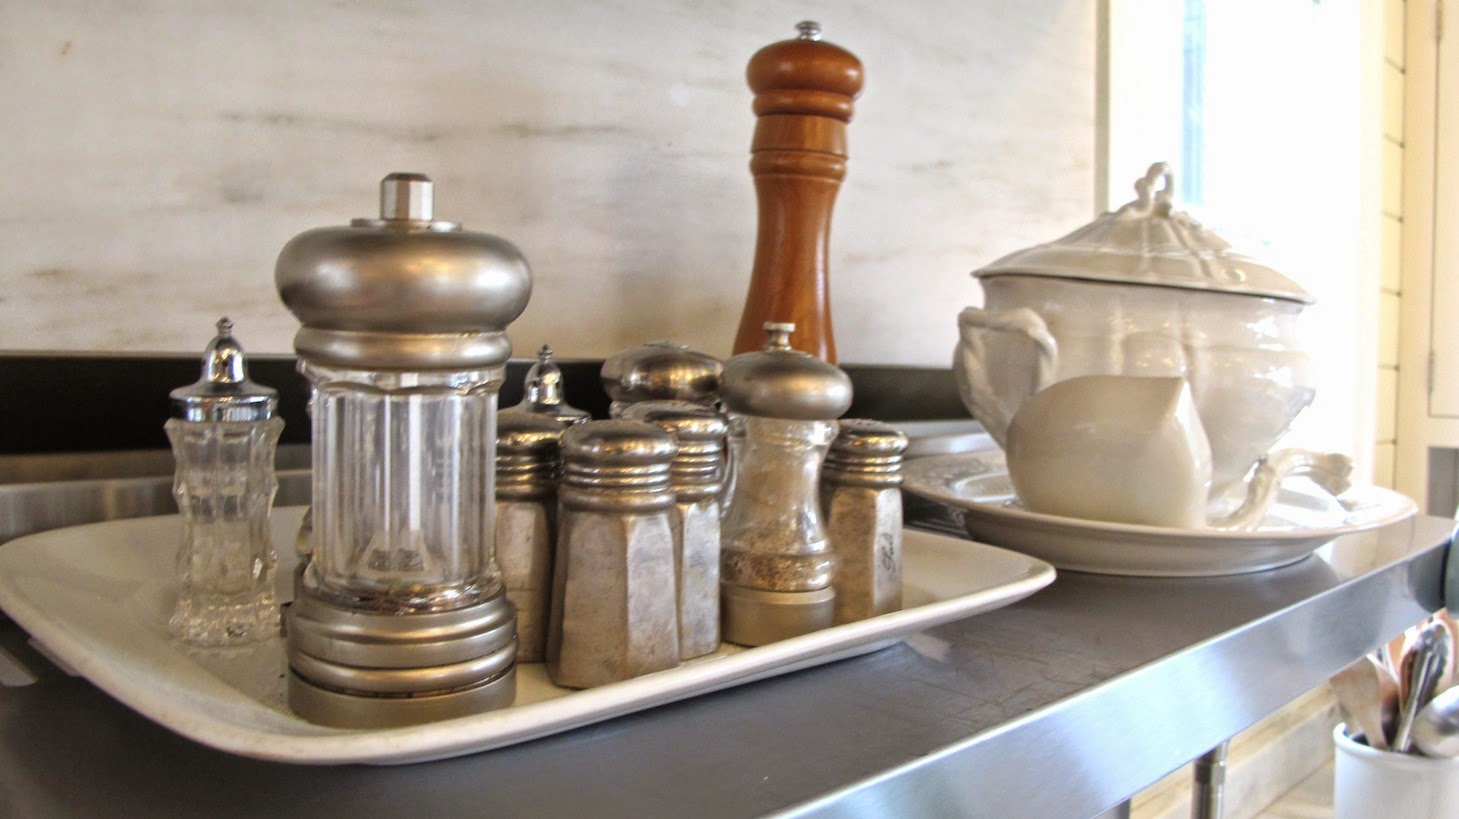 P Allen Smith Moss Mountain Garden Home kitchen shot salt and pepper (c)nwafoodie